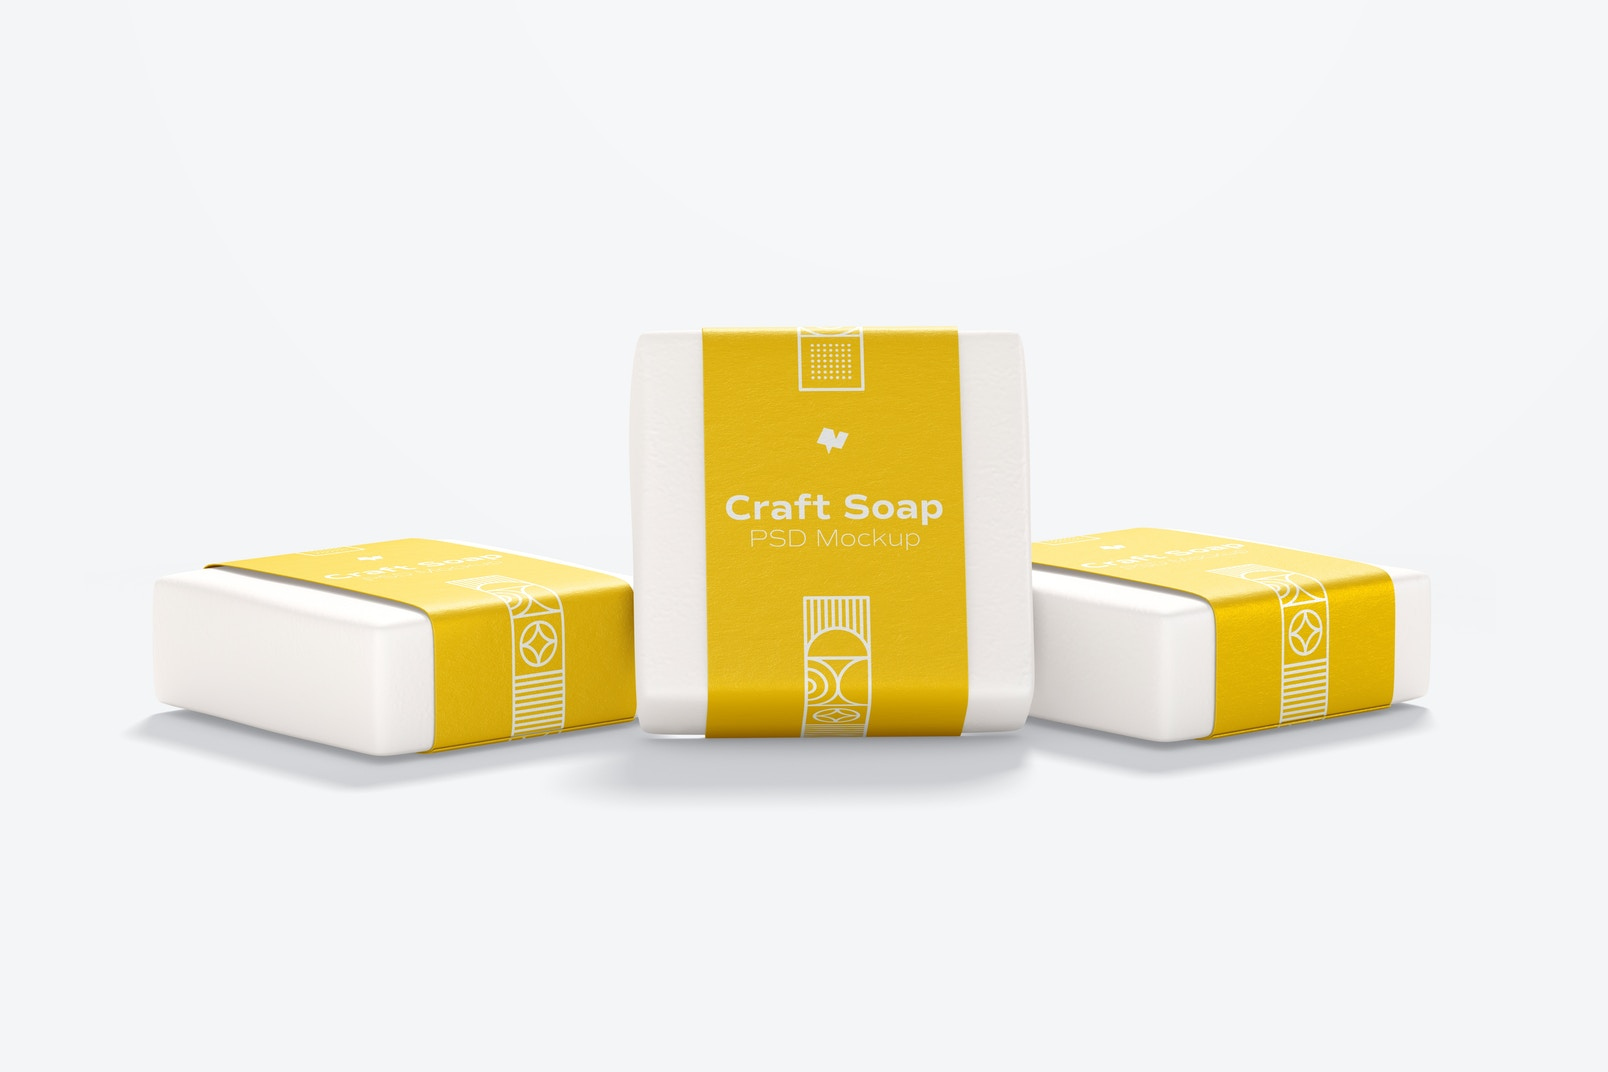 Craft Soaps with Label Mockup